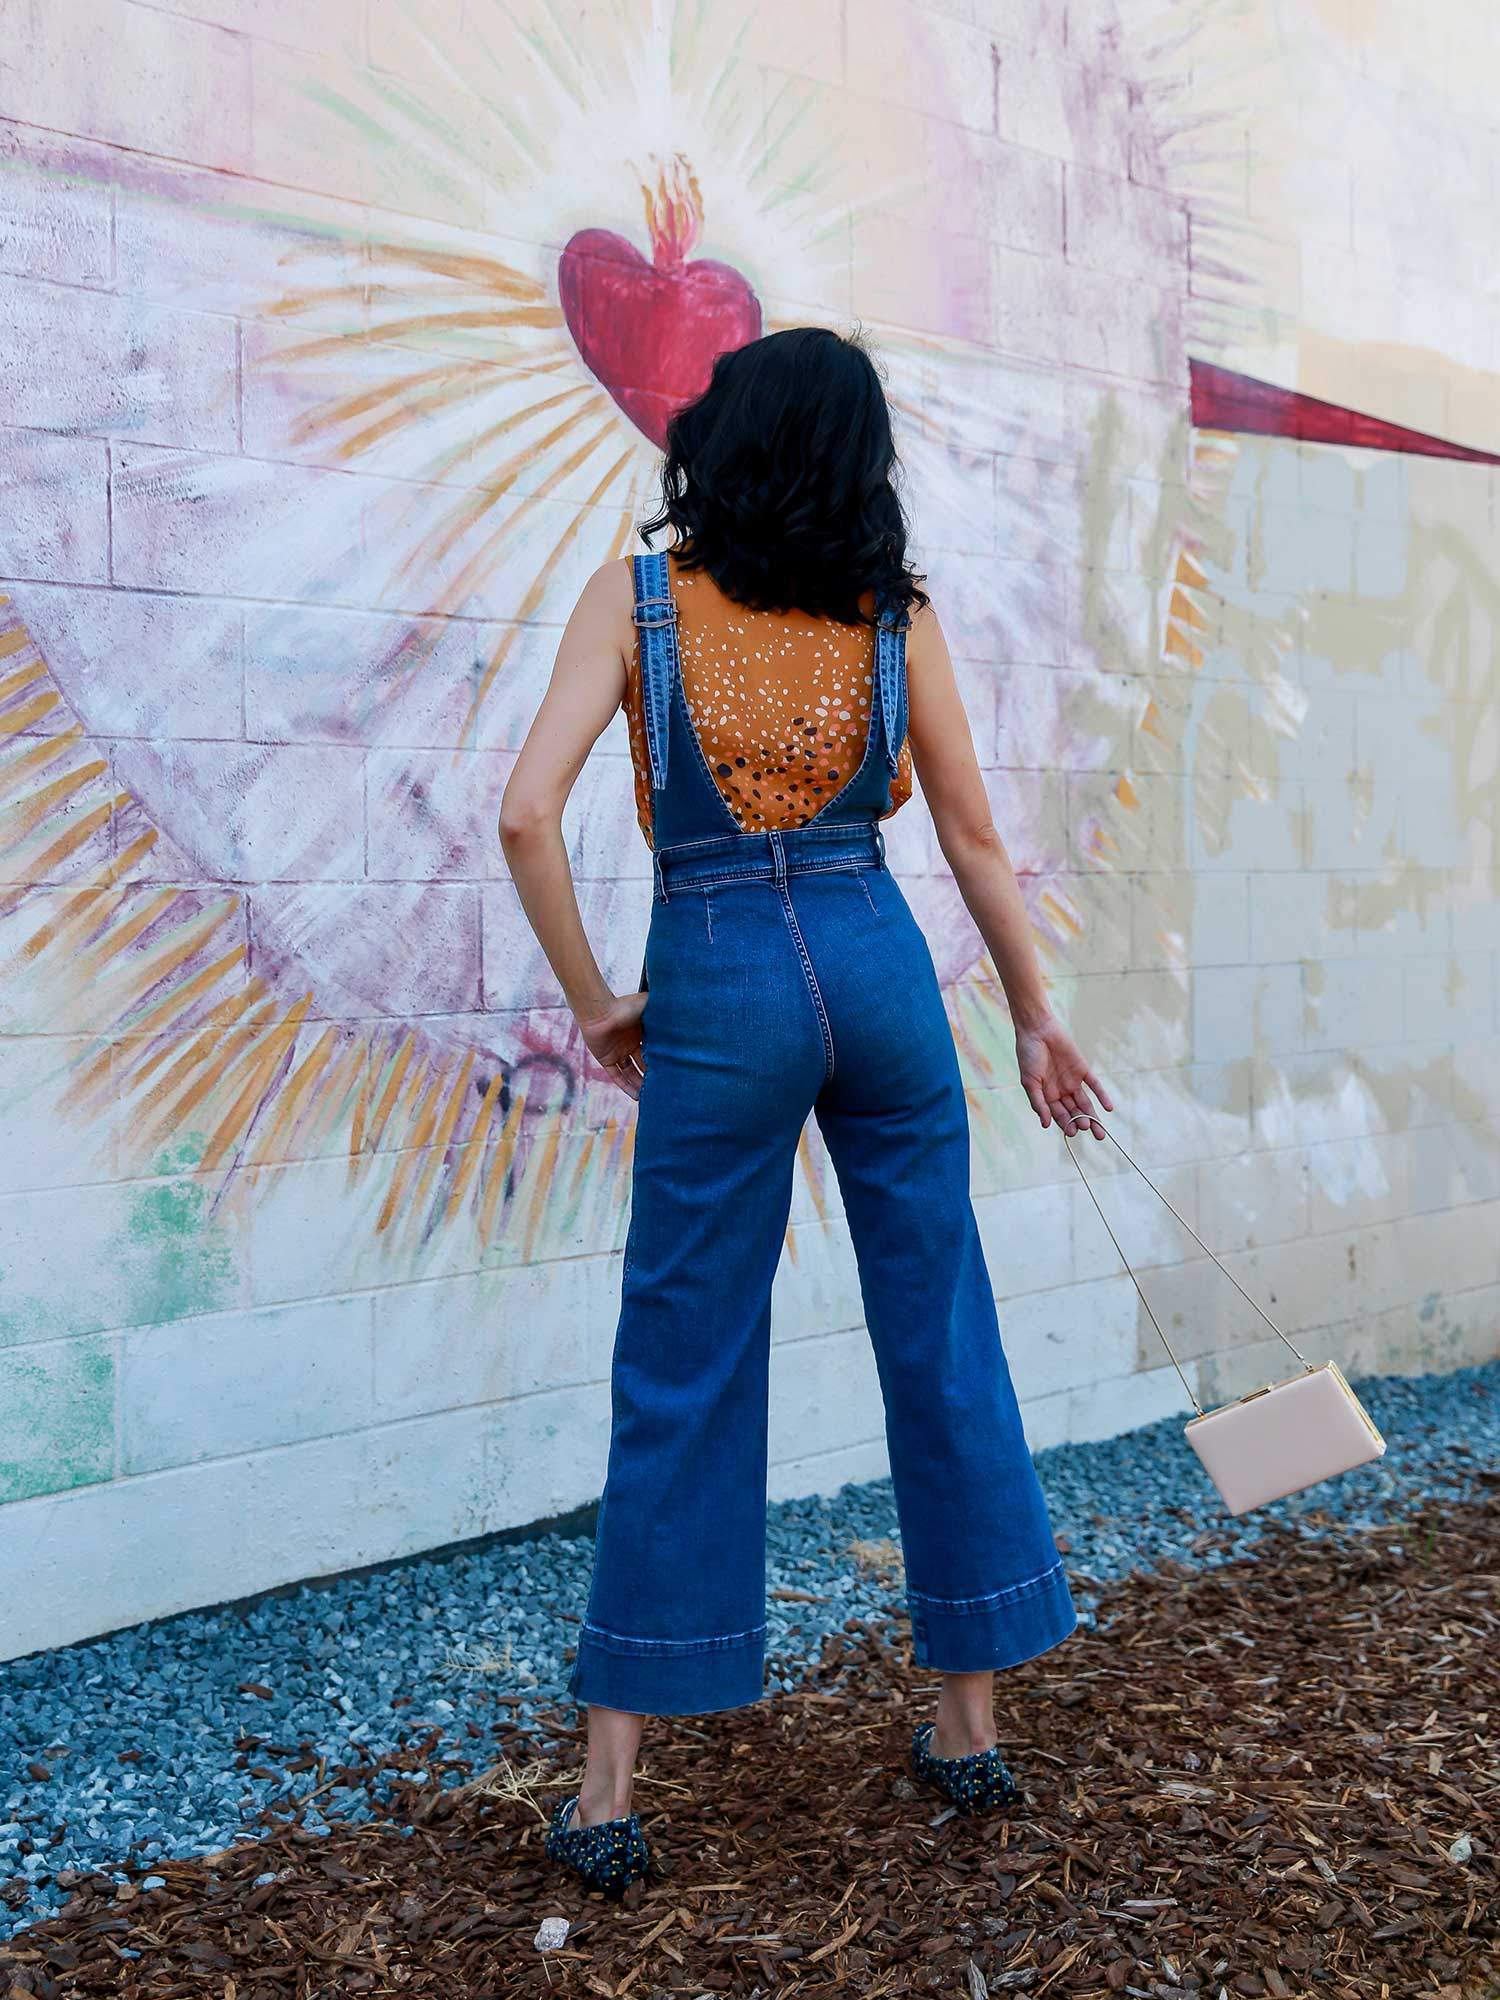 Jenna-Pilant-San-Diego-Style-Blogger-Lucky-Little-Mustardseed-Cabi-Clothing-How-To-Wear-Overalls-For-Fall-6